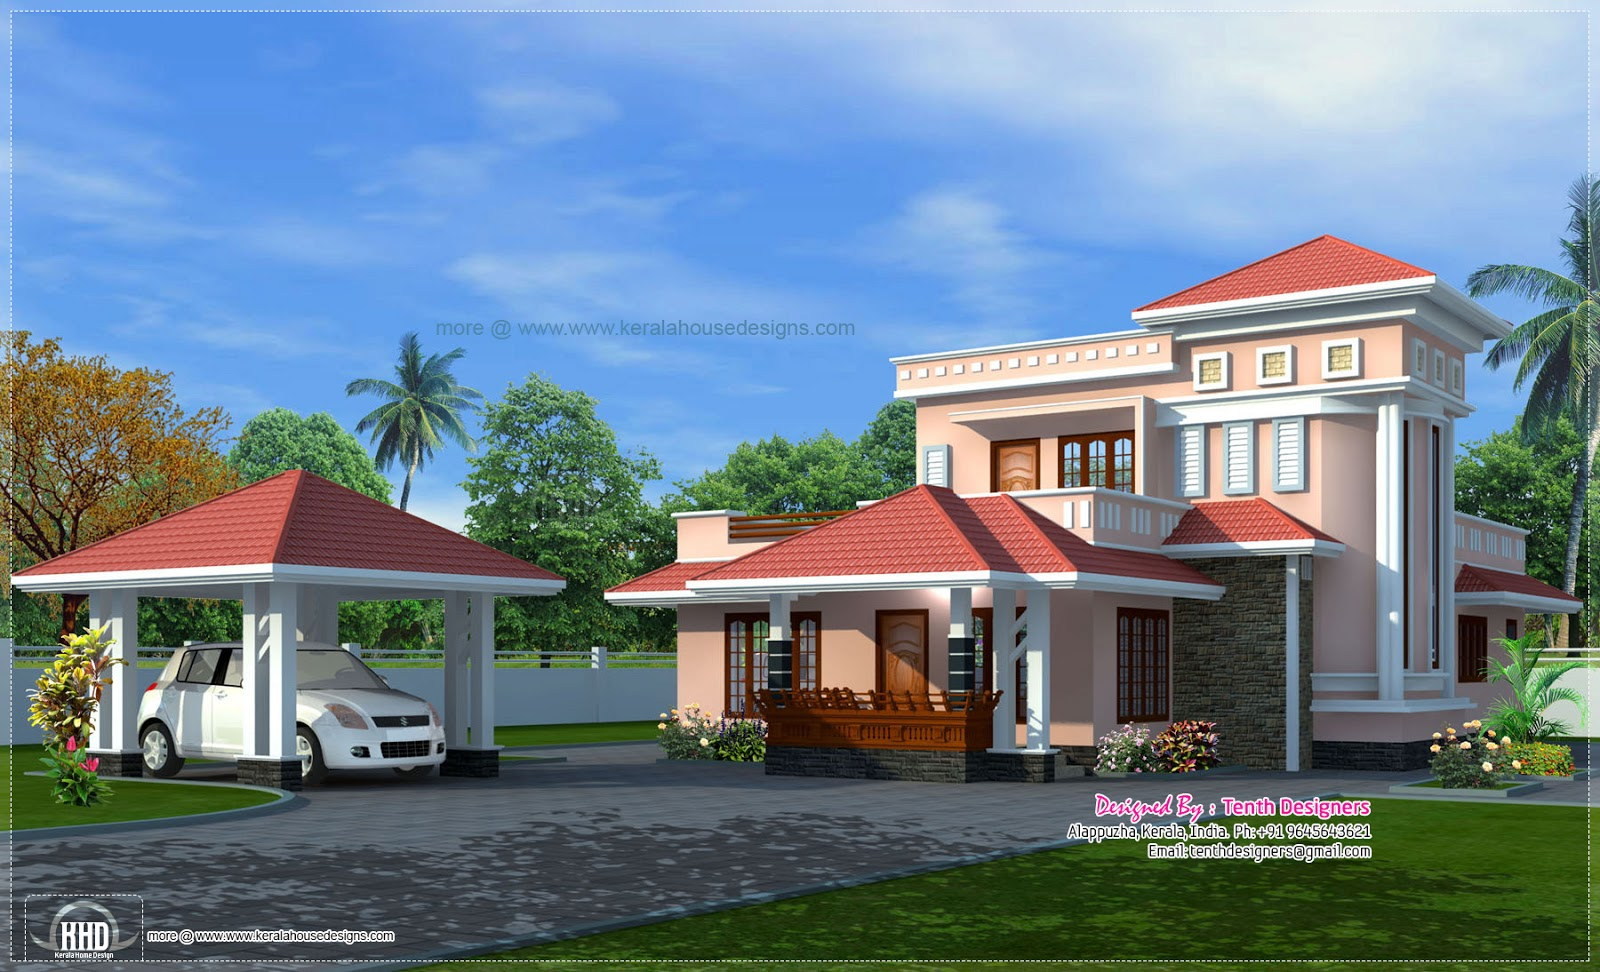 ... exterior with separate car porch - Kerala home design and floor plans